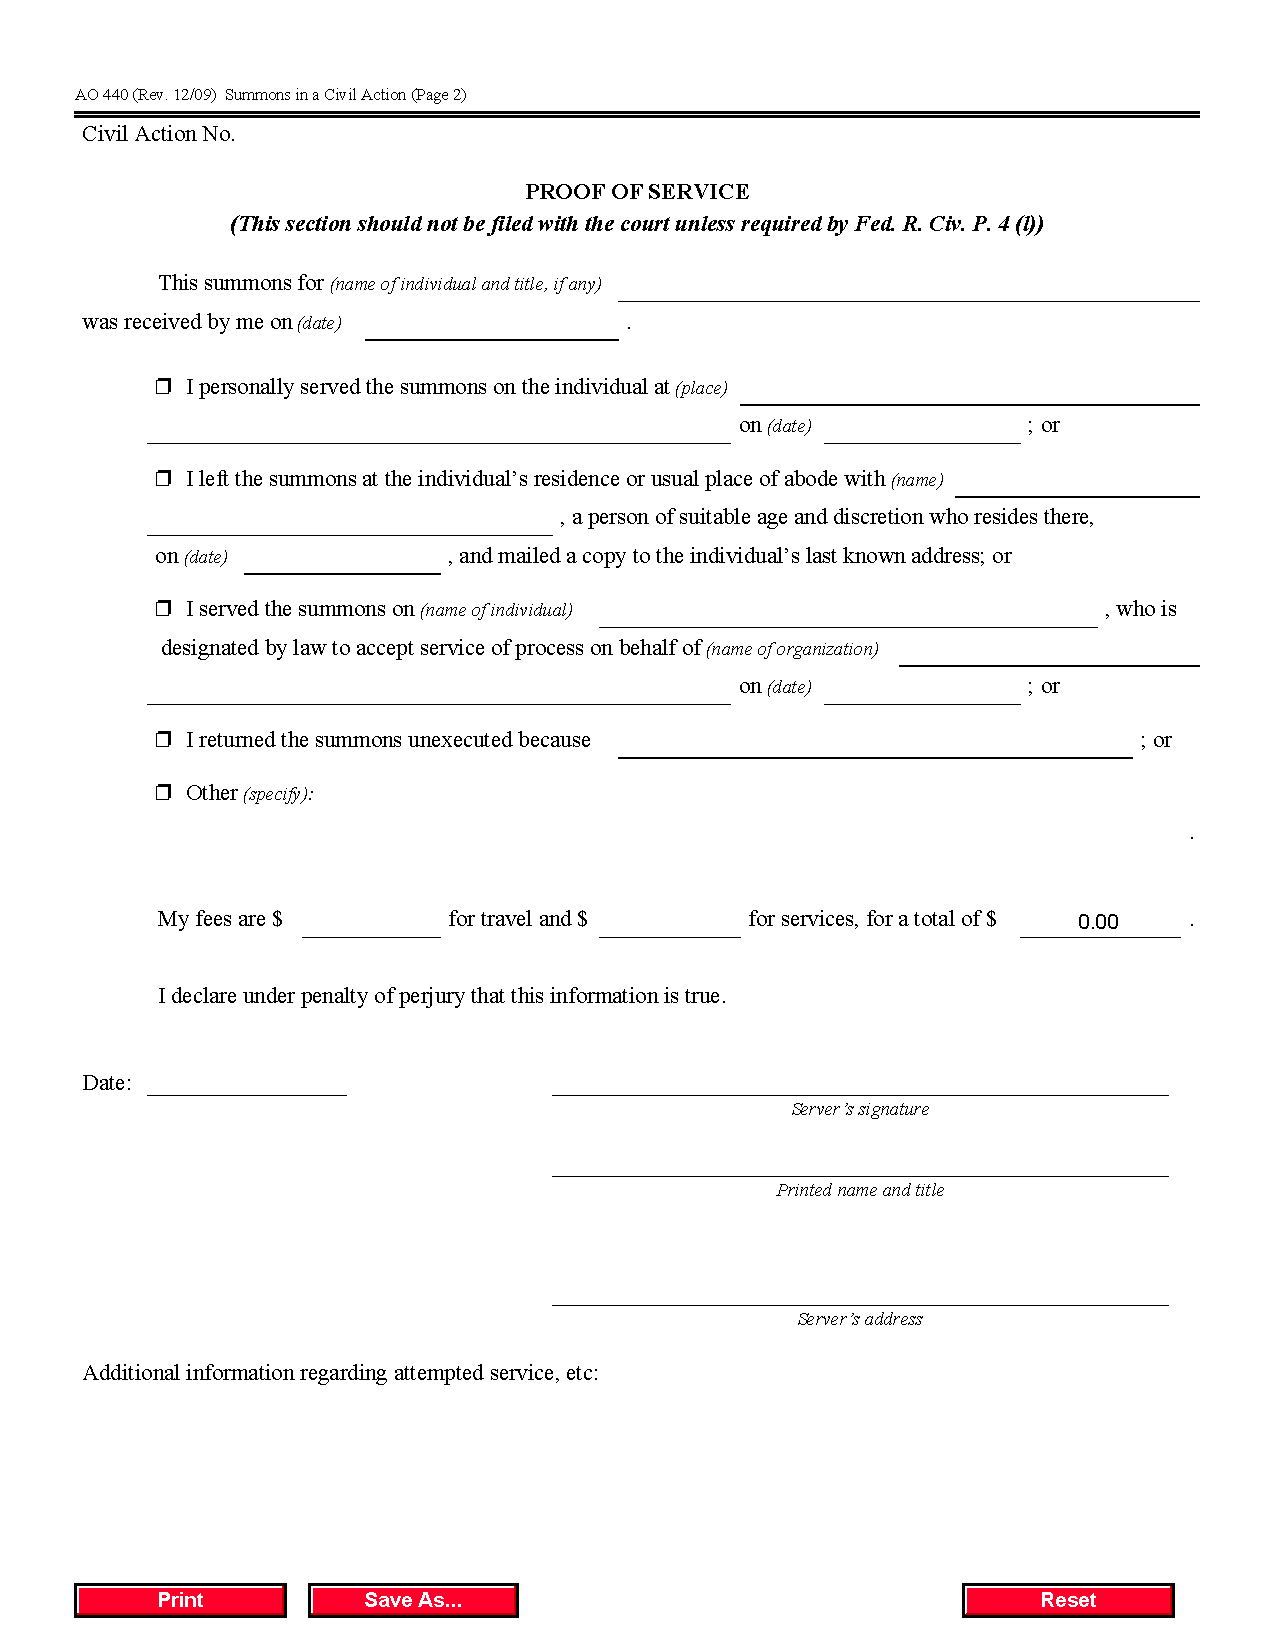 Form Ao 440 Summons In A Civil Action Pertaining To Court Dates By Defendant Name